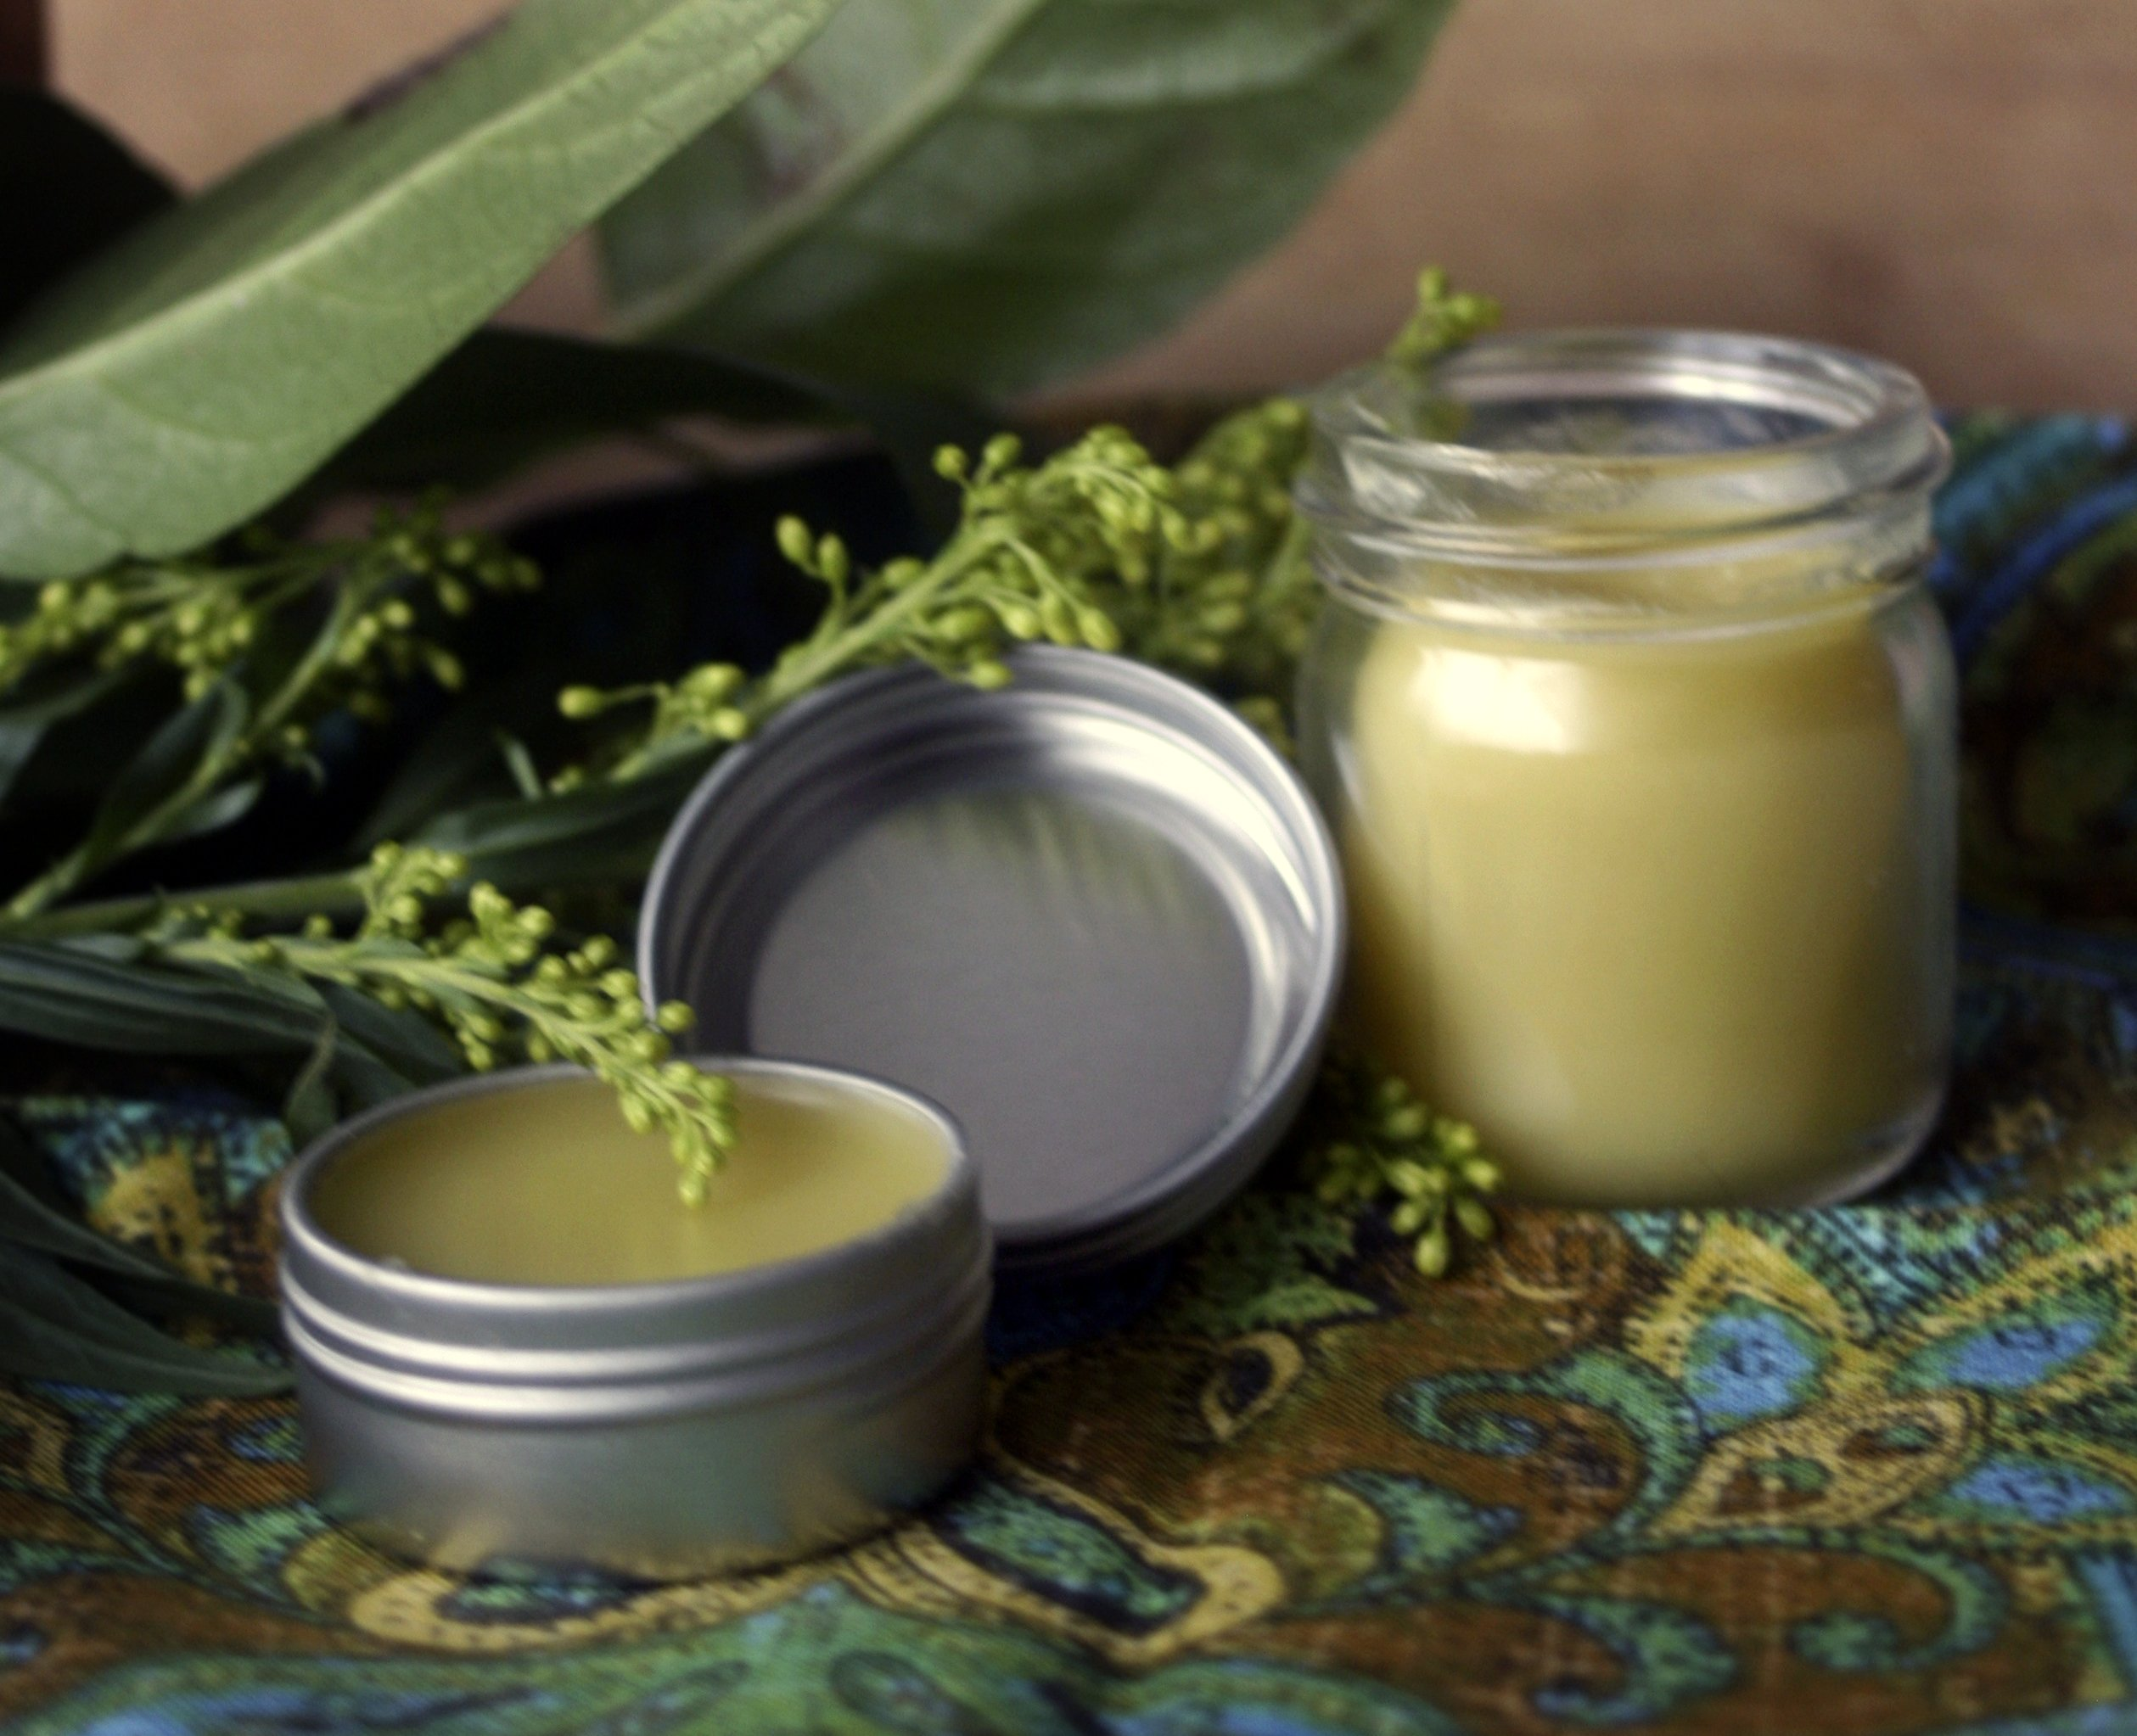 DIY Headache Soothing Salve with Magnesium